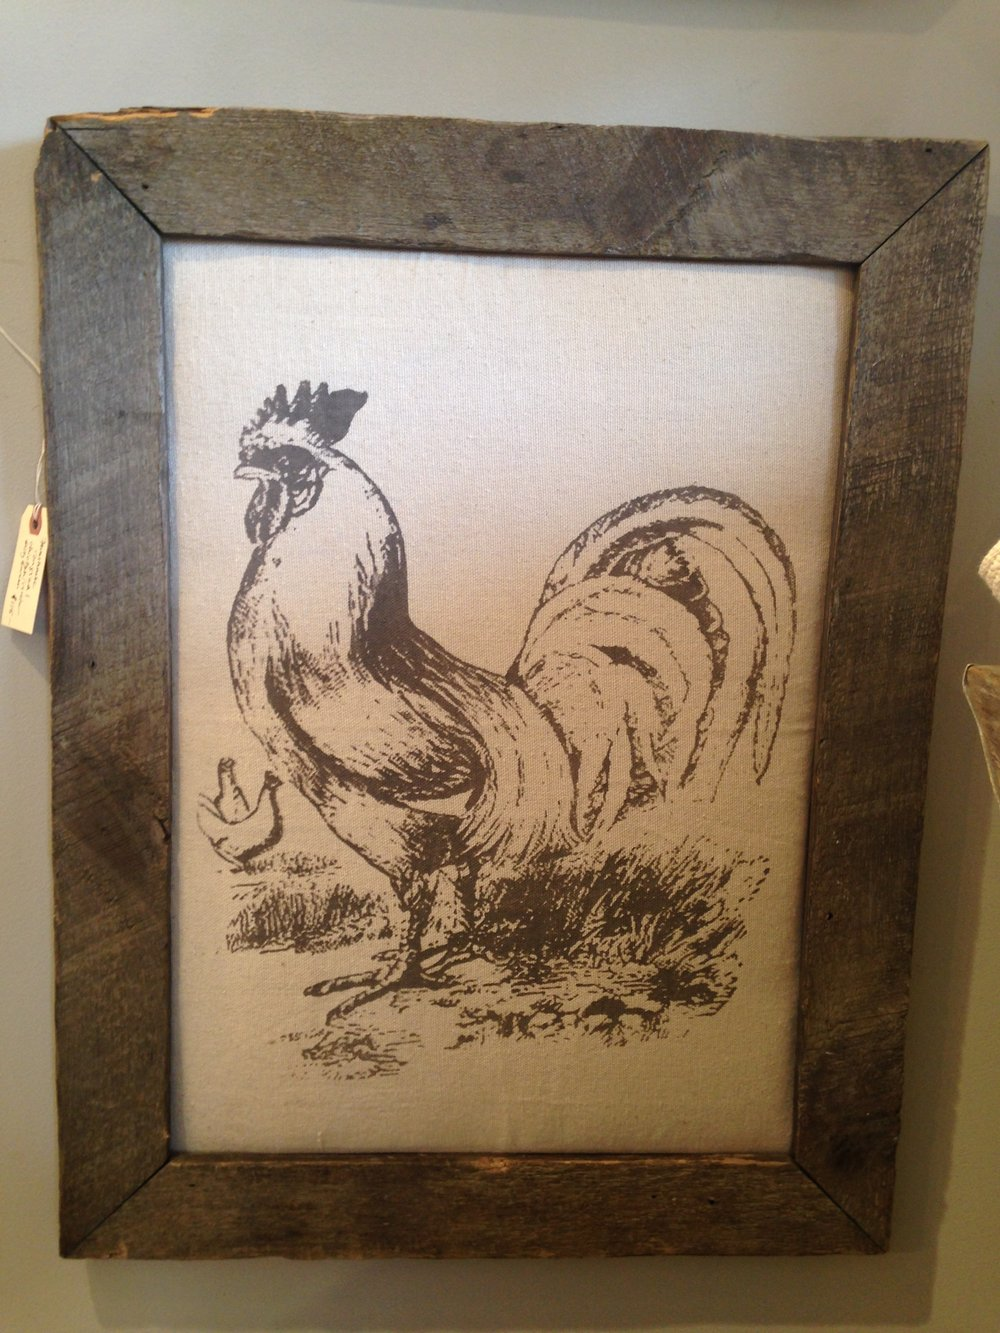 The rooster is completely at home in his barnwood frame